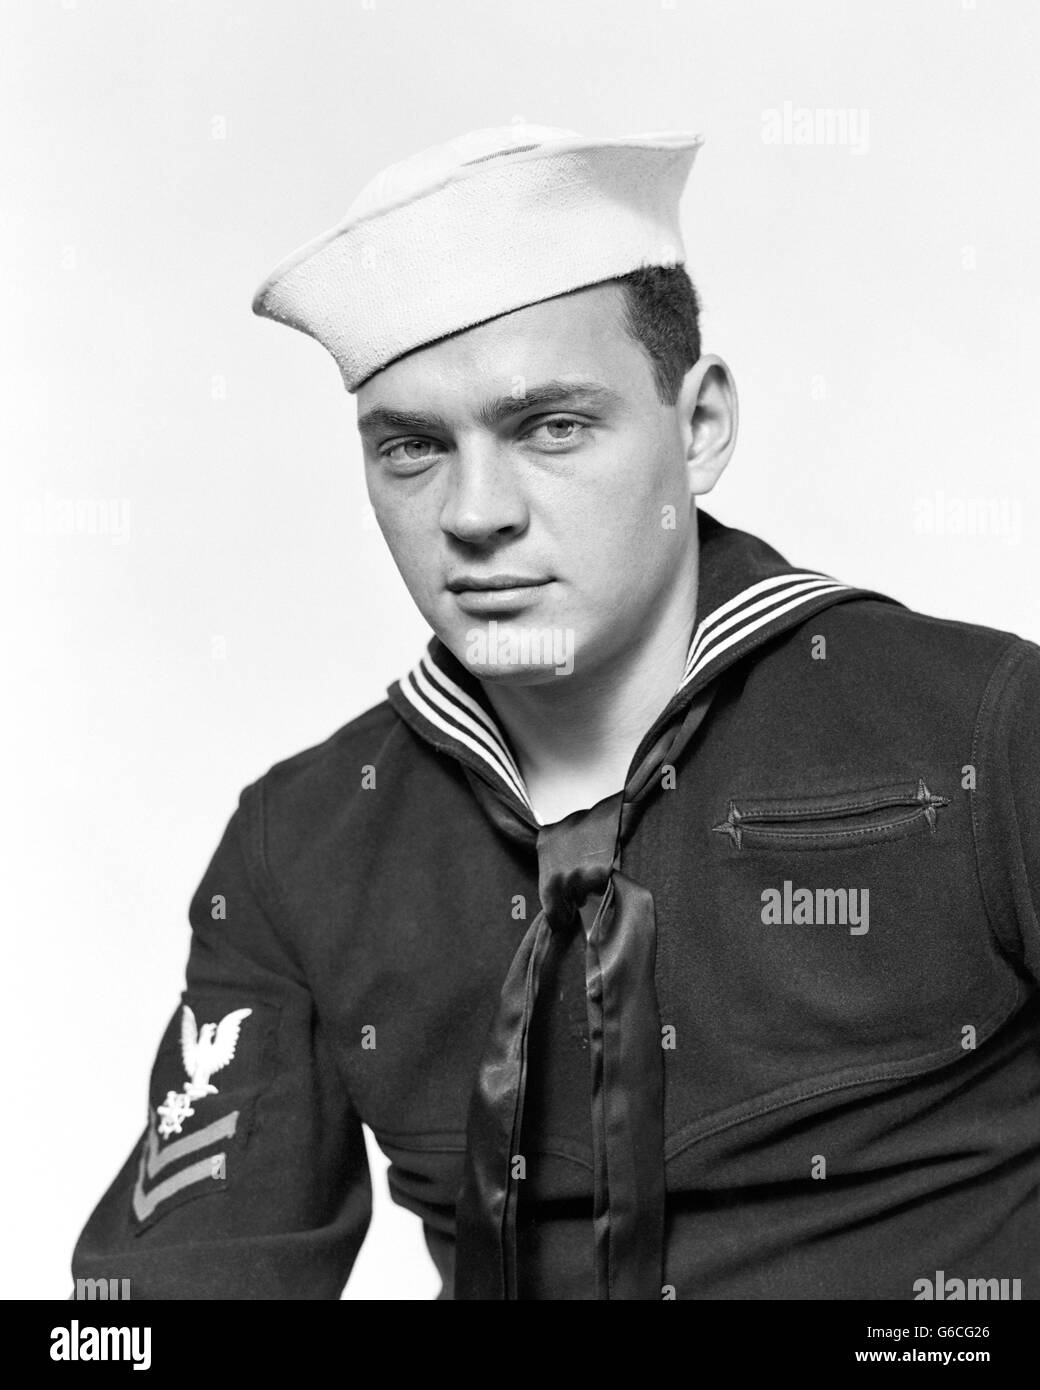 1940s PORTRAIT SERIOUS AMERICAN SAILOR WEARING NAVY UNIFORM LOOKING AT CAMERA Stock Photo